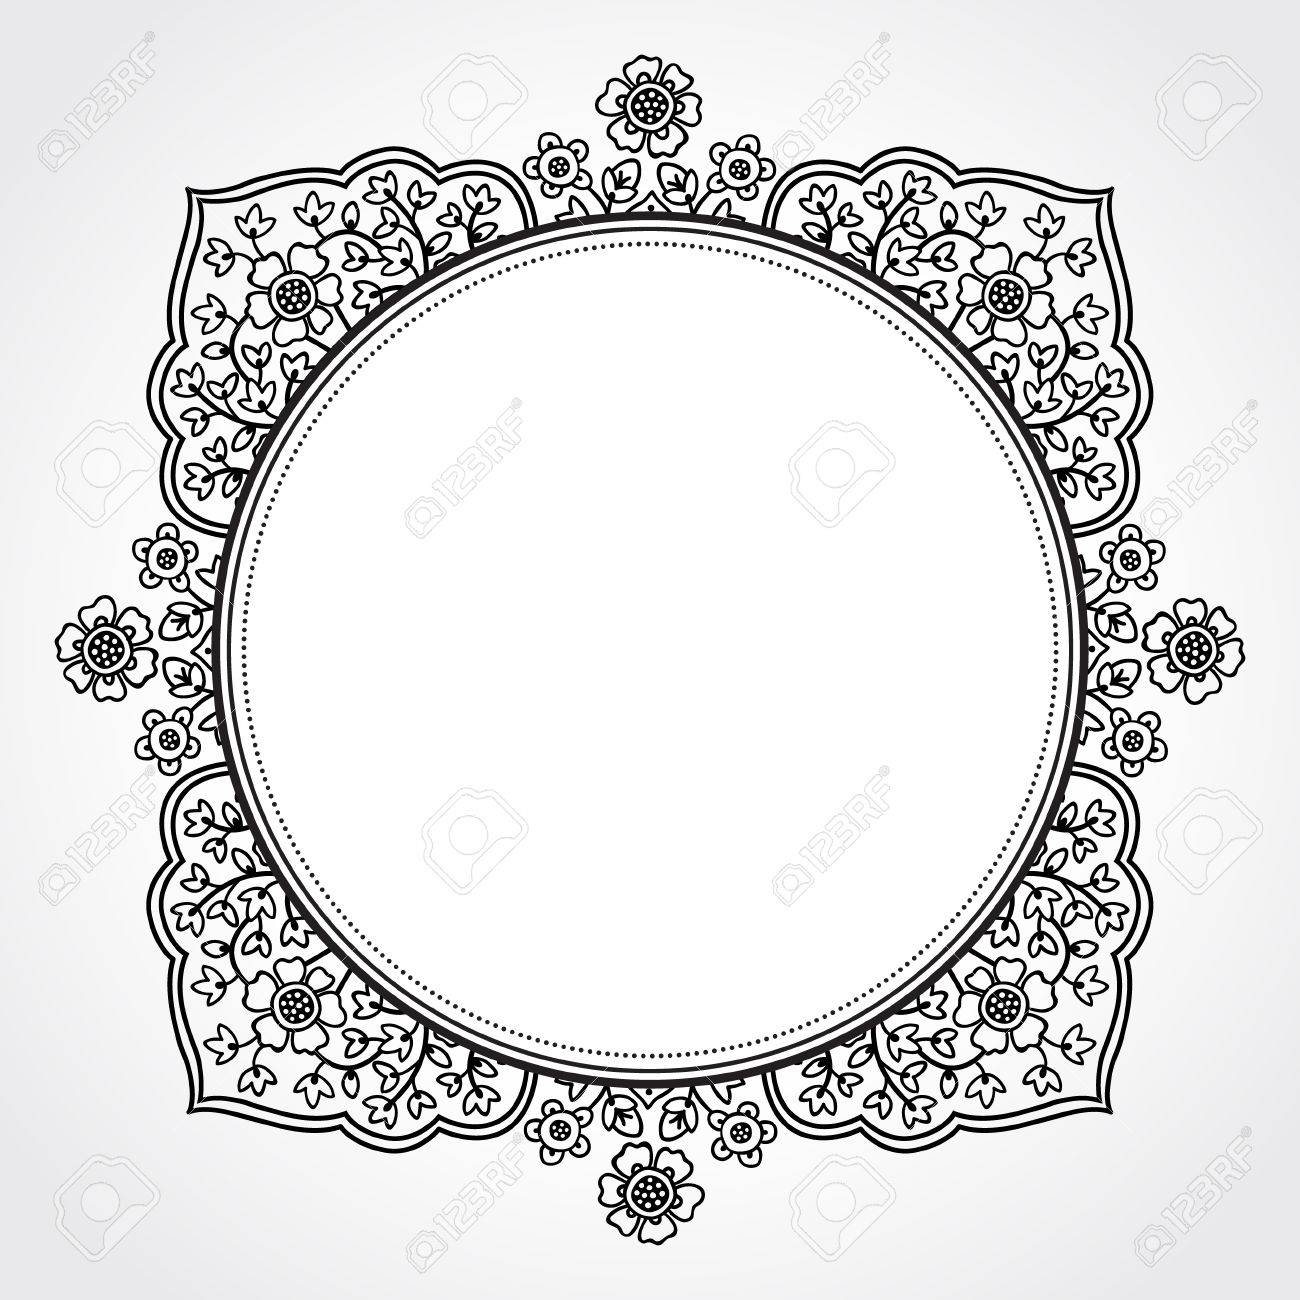 f03b206071a Vector - Vintage ornate frame with place for your text. Vector ornamental  framework. East floral decor. Save the date. Template frame design for  greeting ...